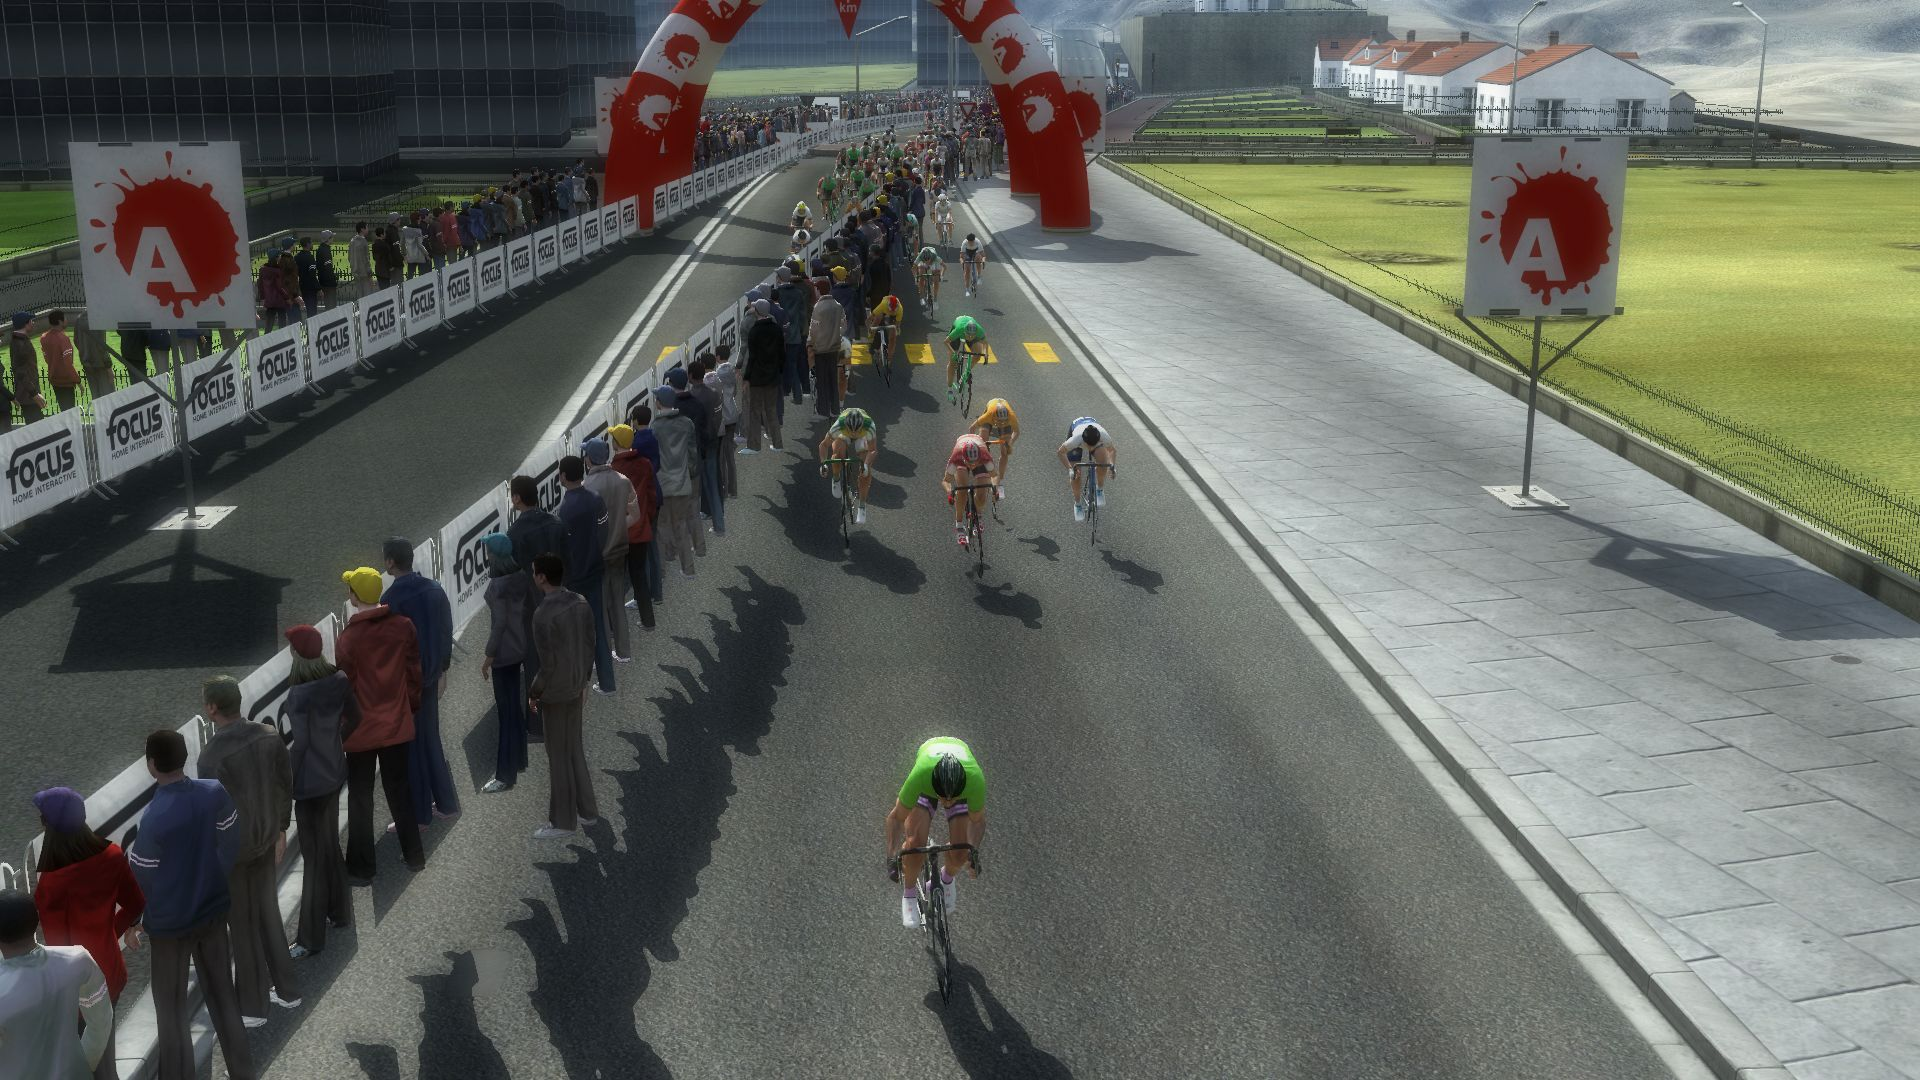 pcmdaily.com/images/mg/2019/Races/C2HC/Eritrea/TOES2%2016.jpg